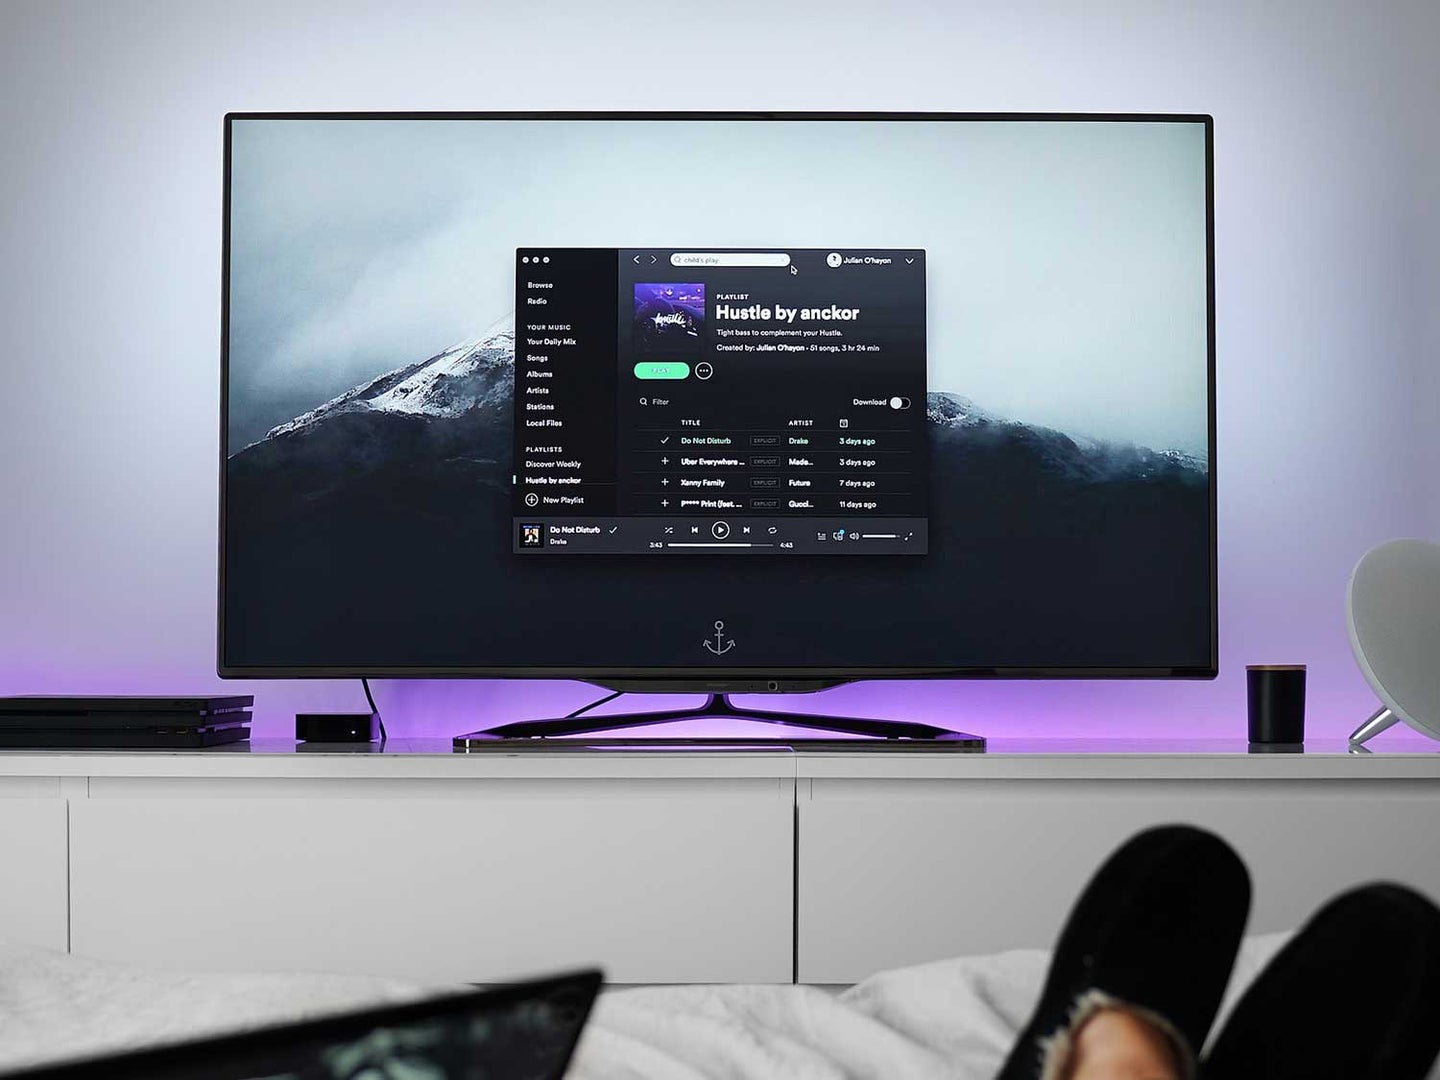 Spotify playing on tv.